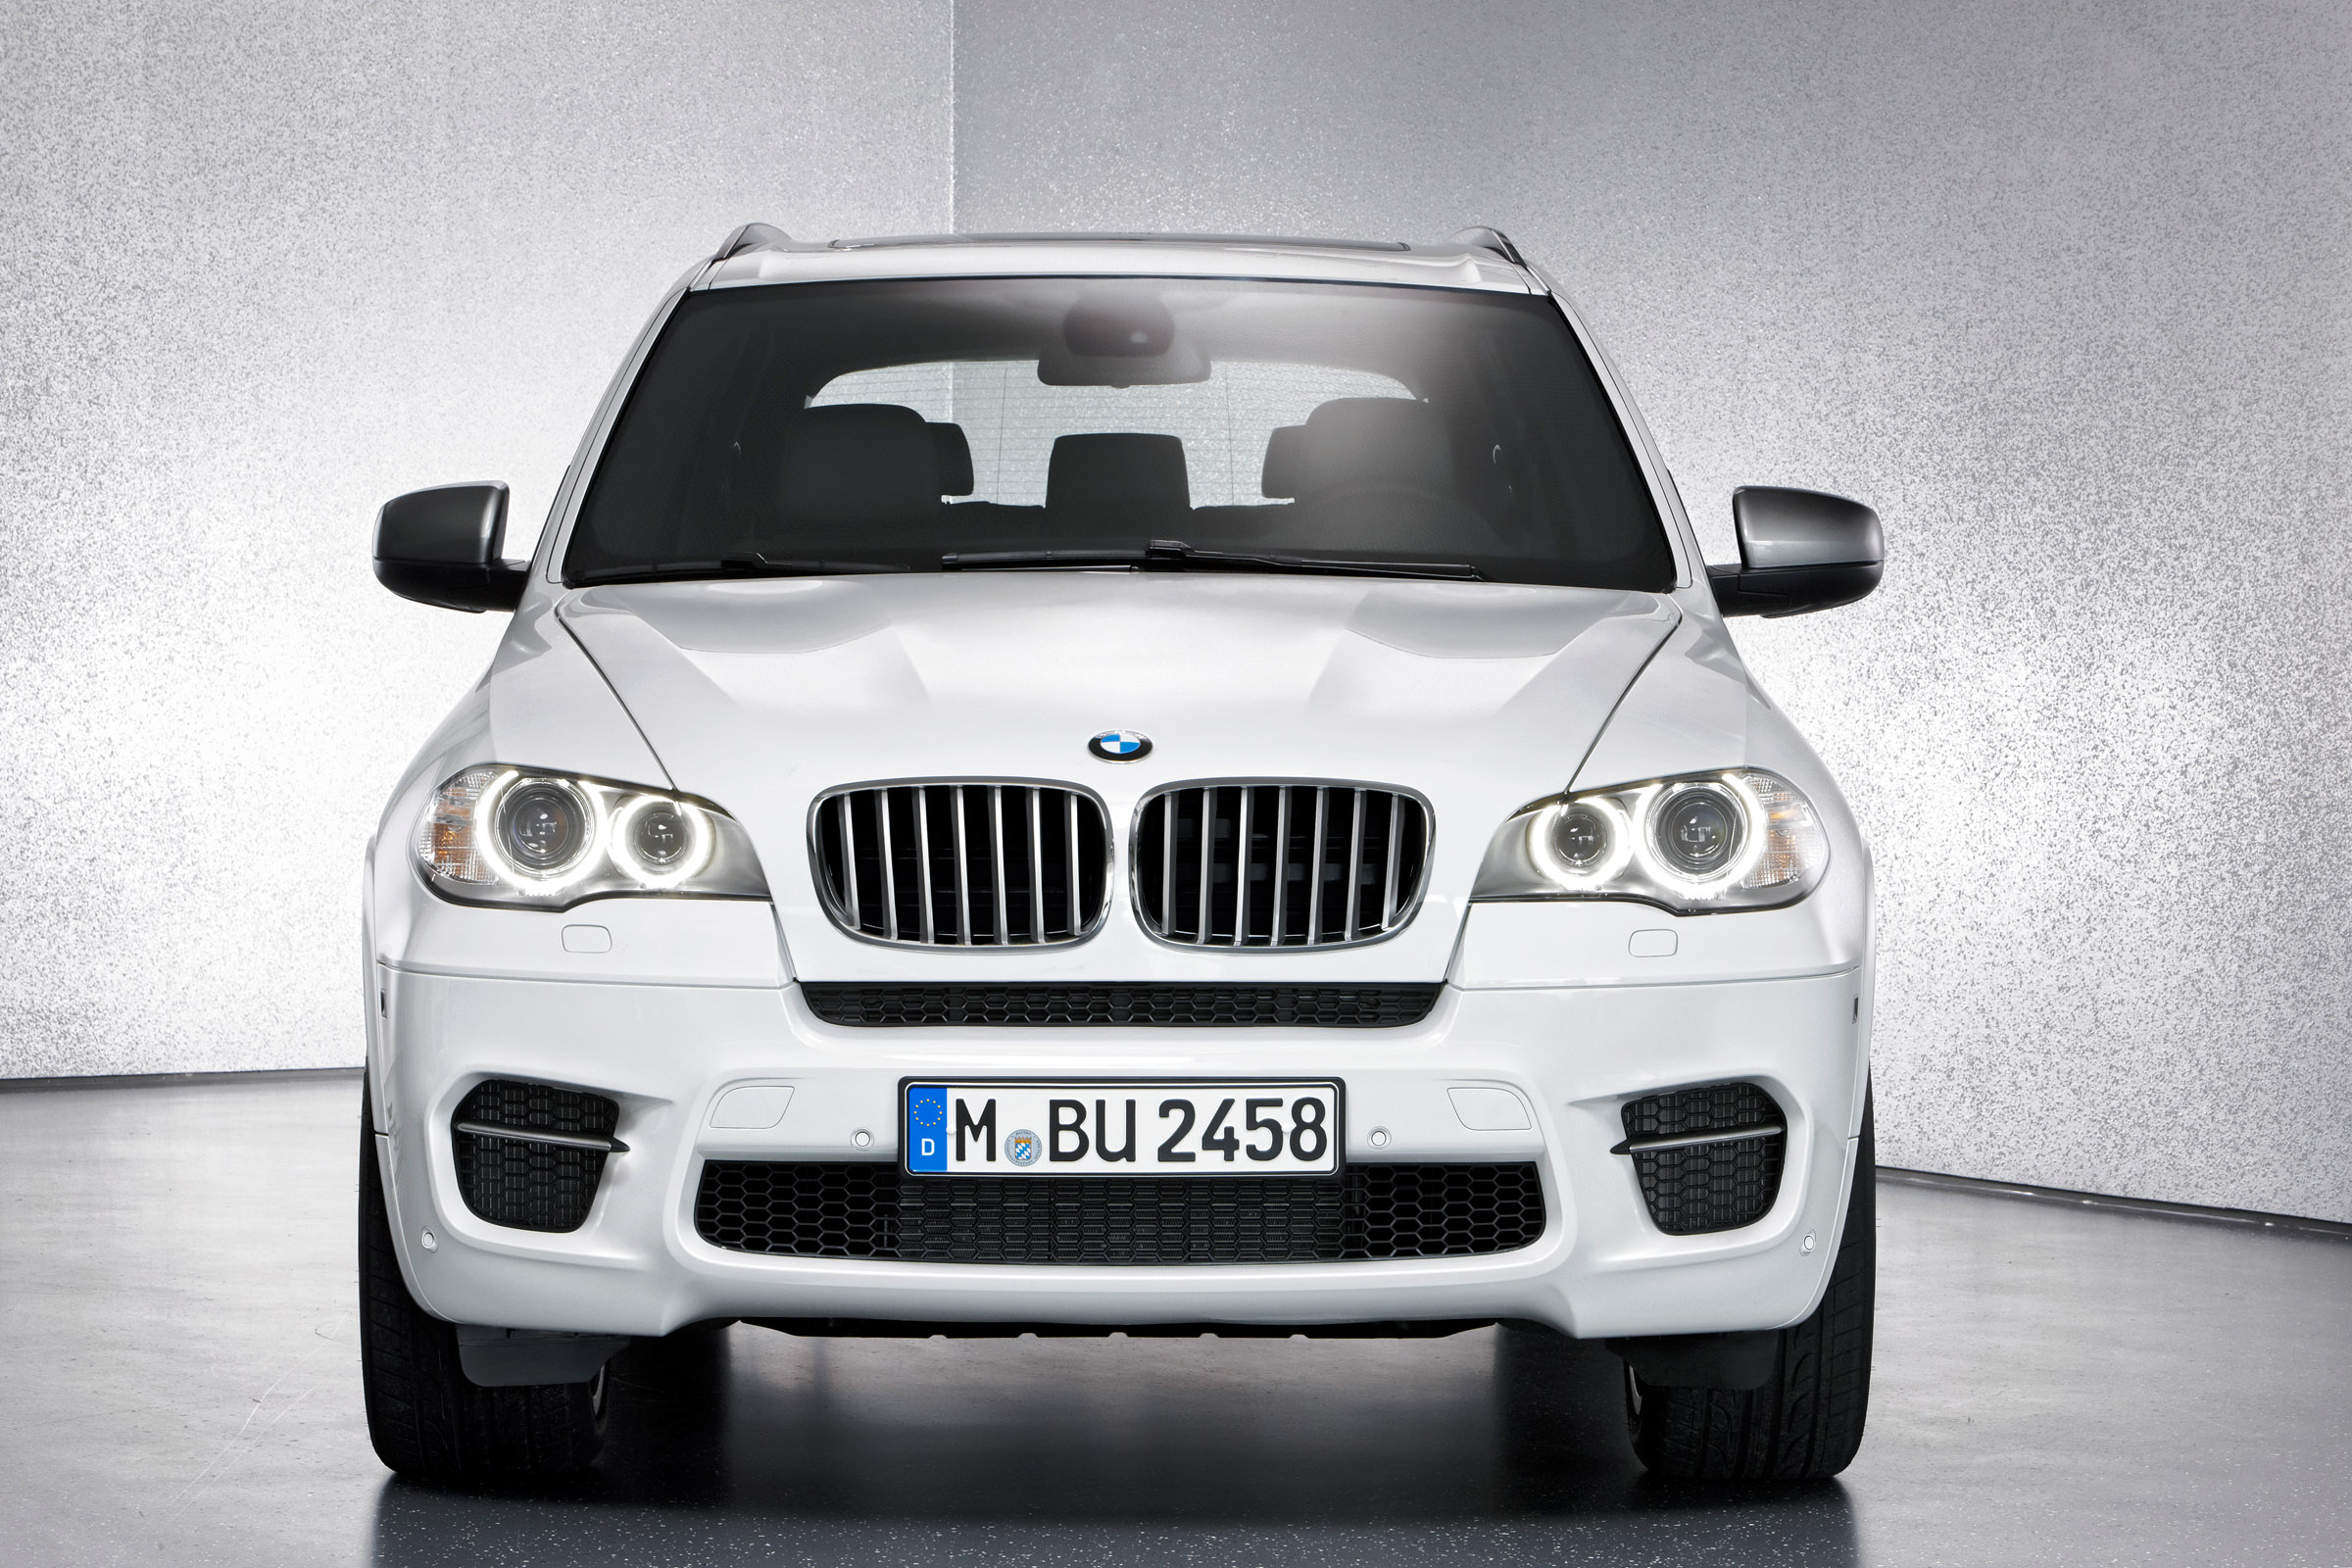 bmw x3 xdrive28i and bmw x5 m sport edition. Black Bedroom Furniture Sets. Home Design Ideas